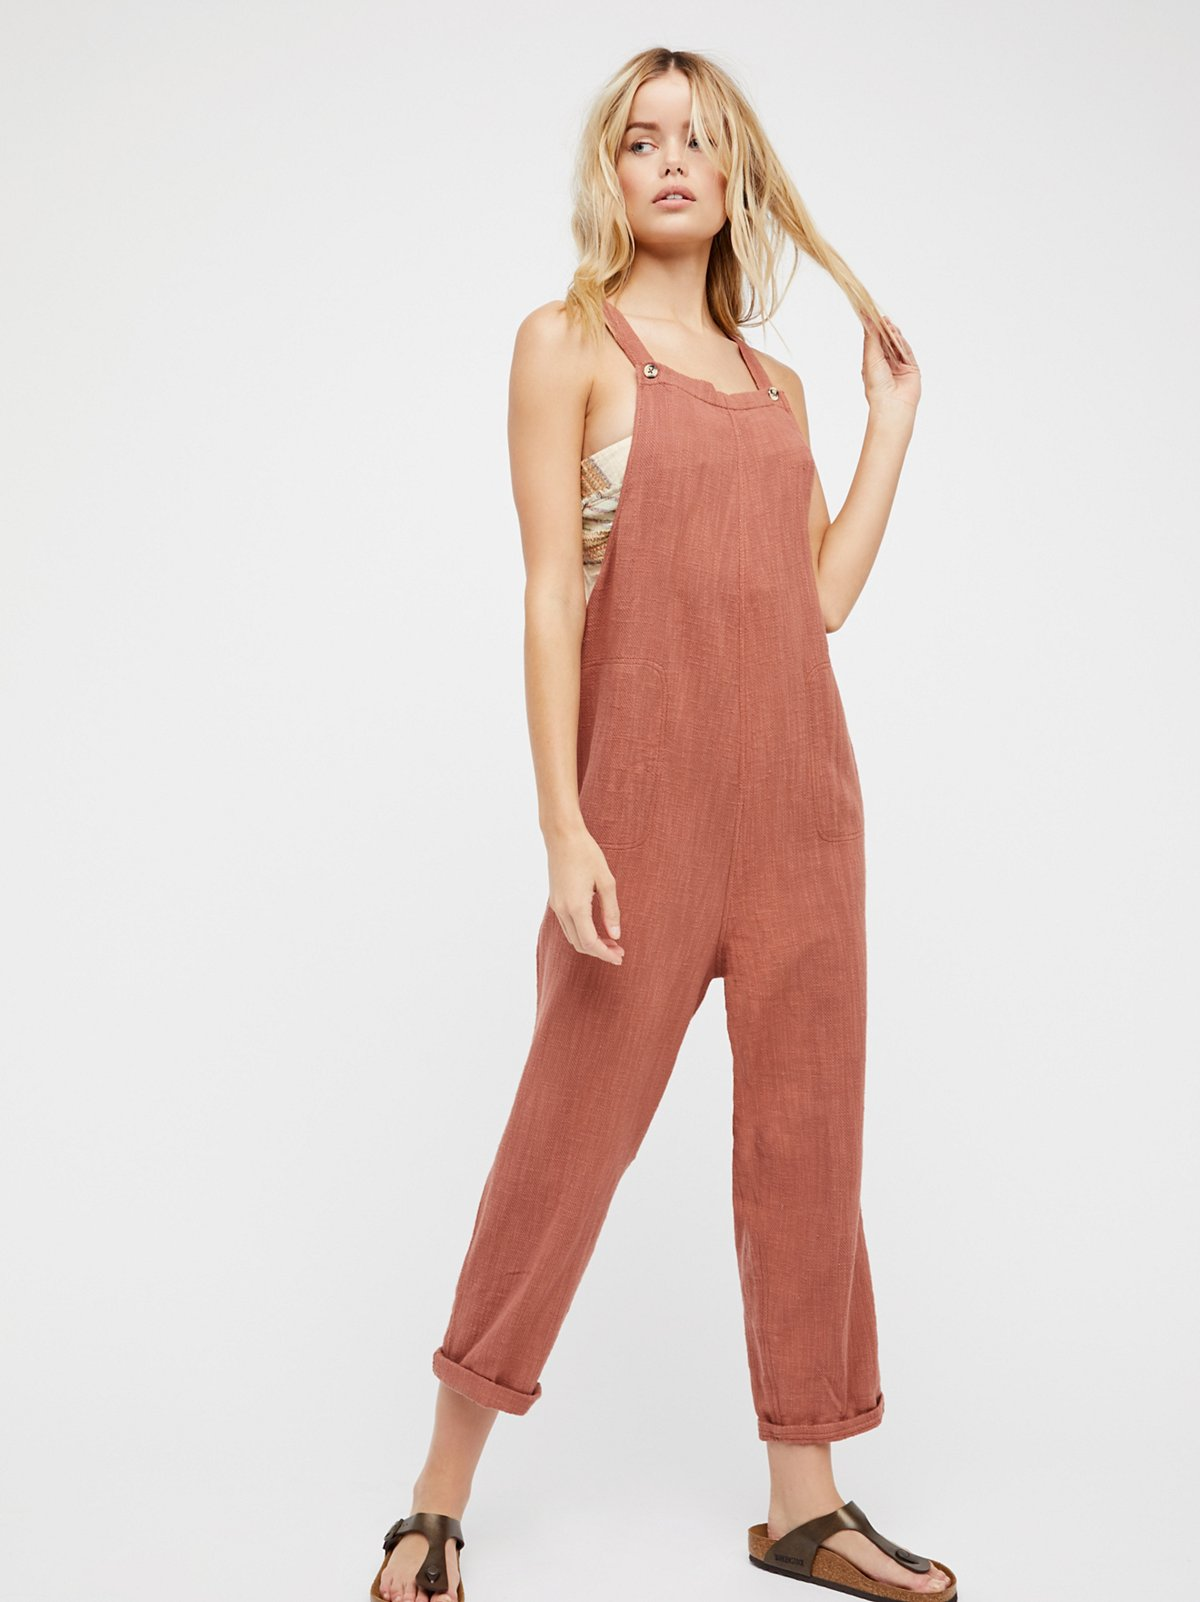 Sezanne One Piece Jumpsuit